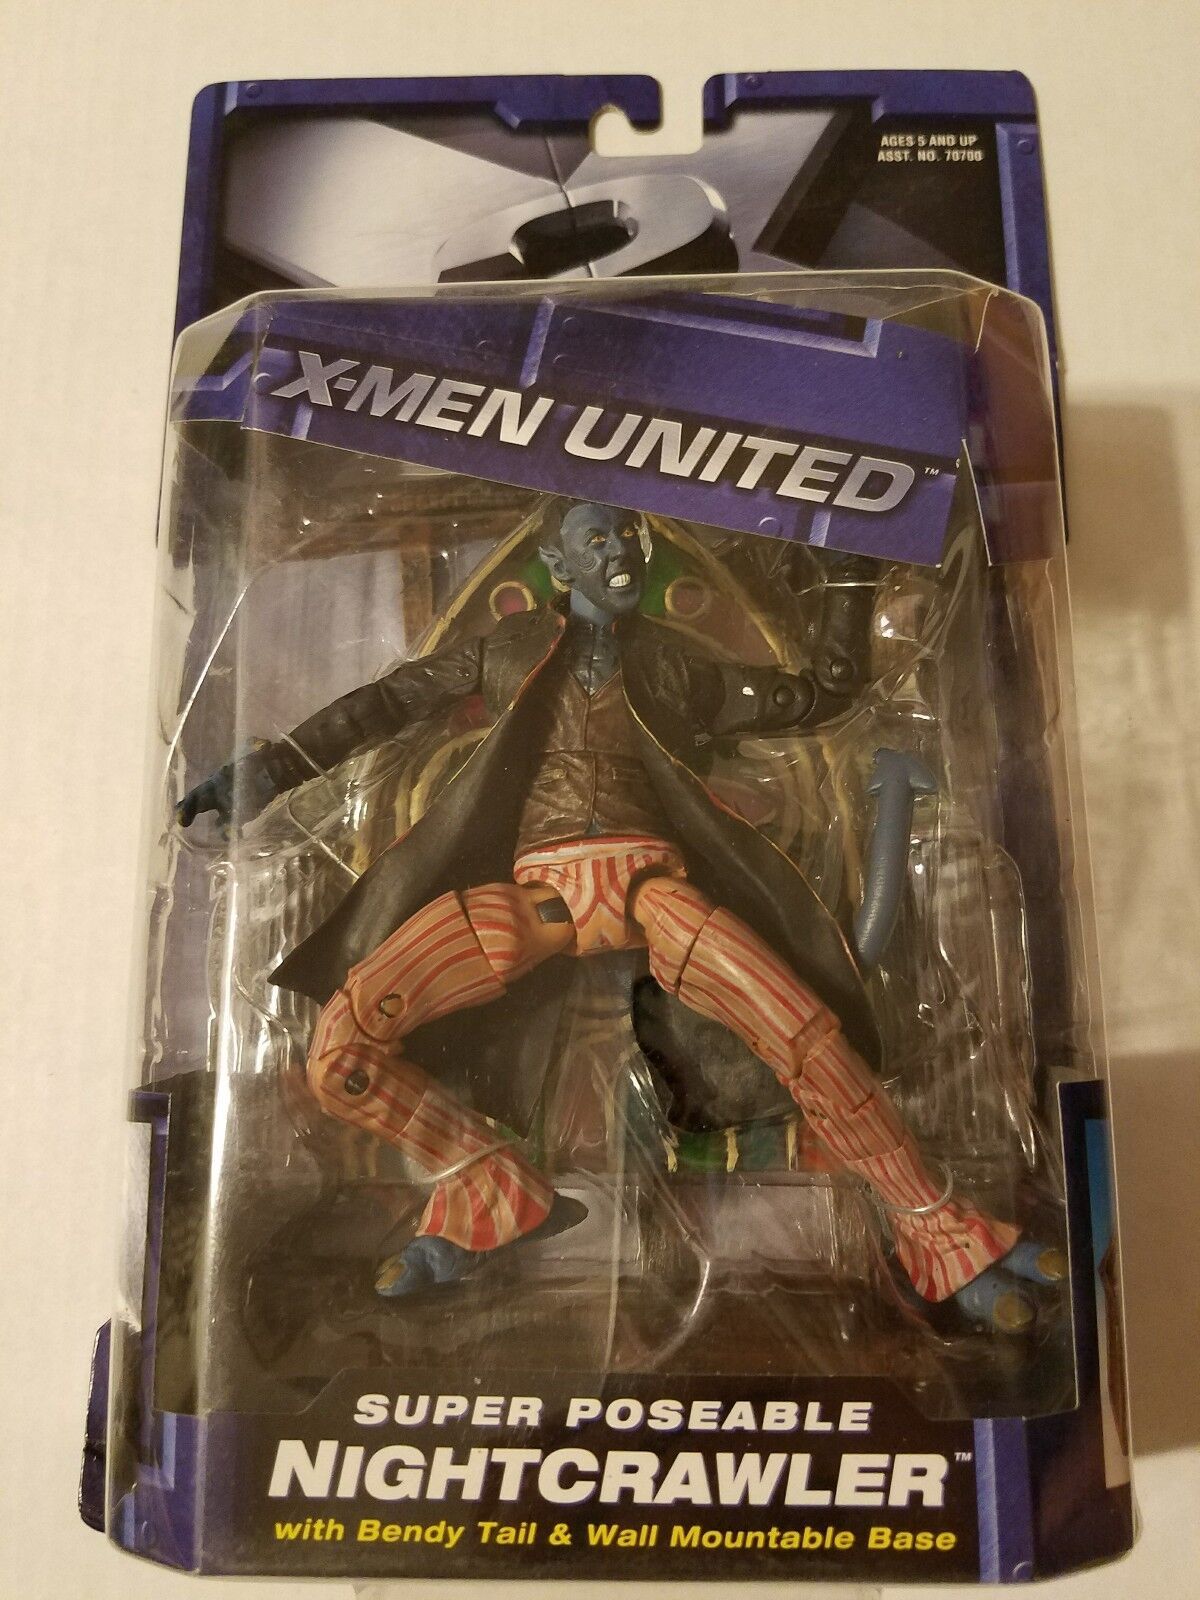 X-Men United X2 Super Poseable Nightcrawler Action Figure with Bendy Tail